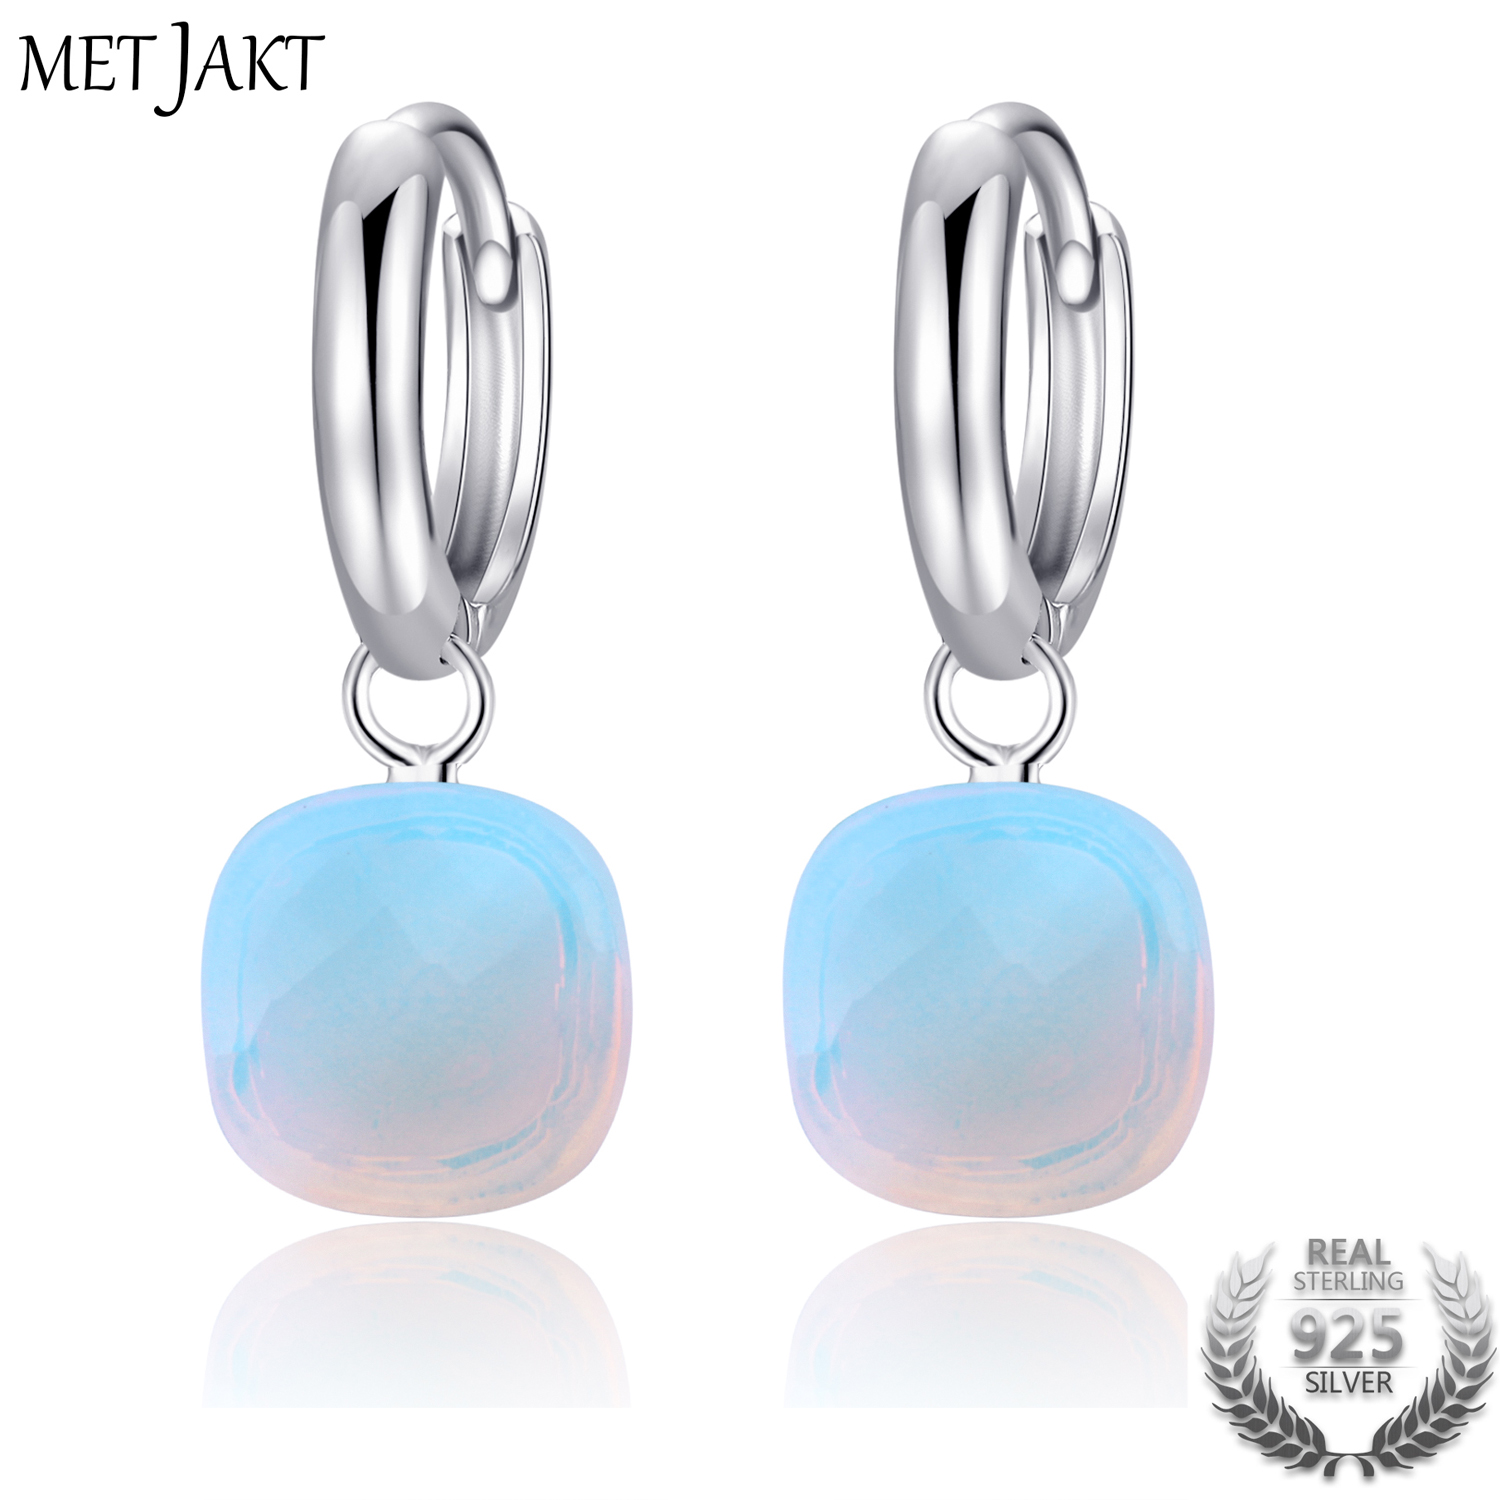 MetJakt Classic Natural Moonstone Drop Earrings Solid 925 Sterling Silver Pendant Earring for Women s Occasions